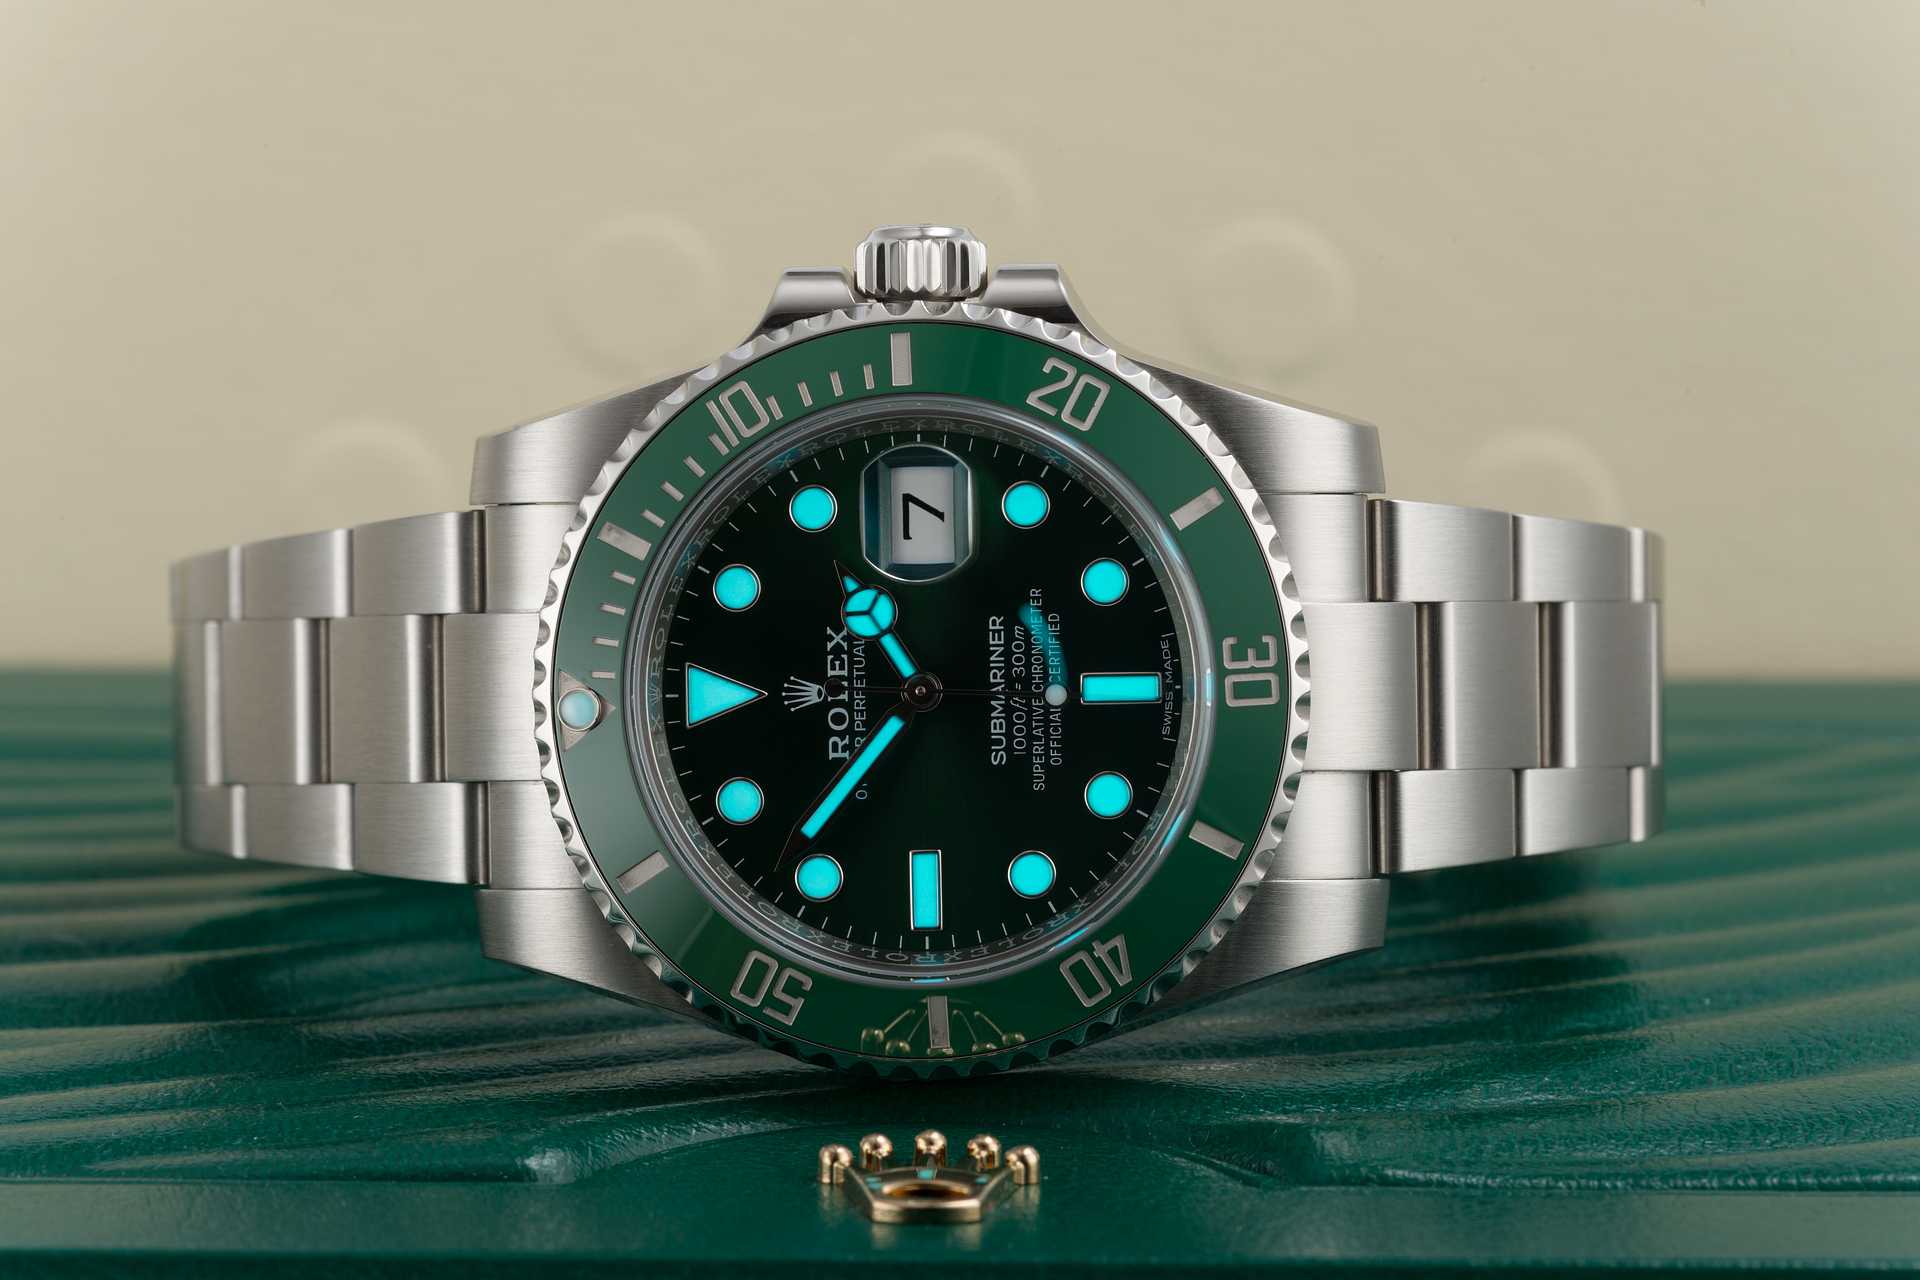 Rolex Submariner Date Watches Ref 116610lv 5 Year